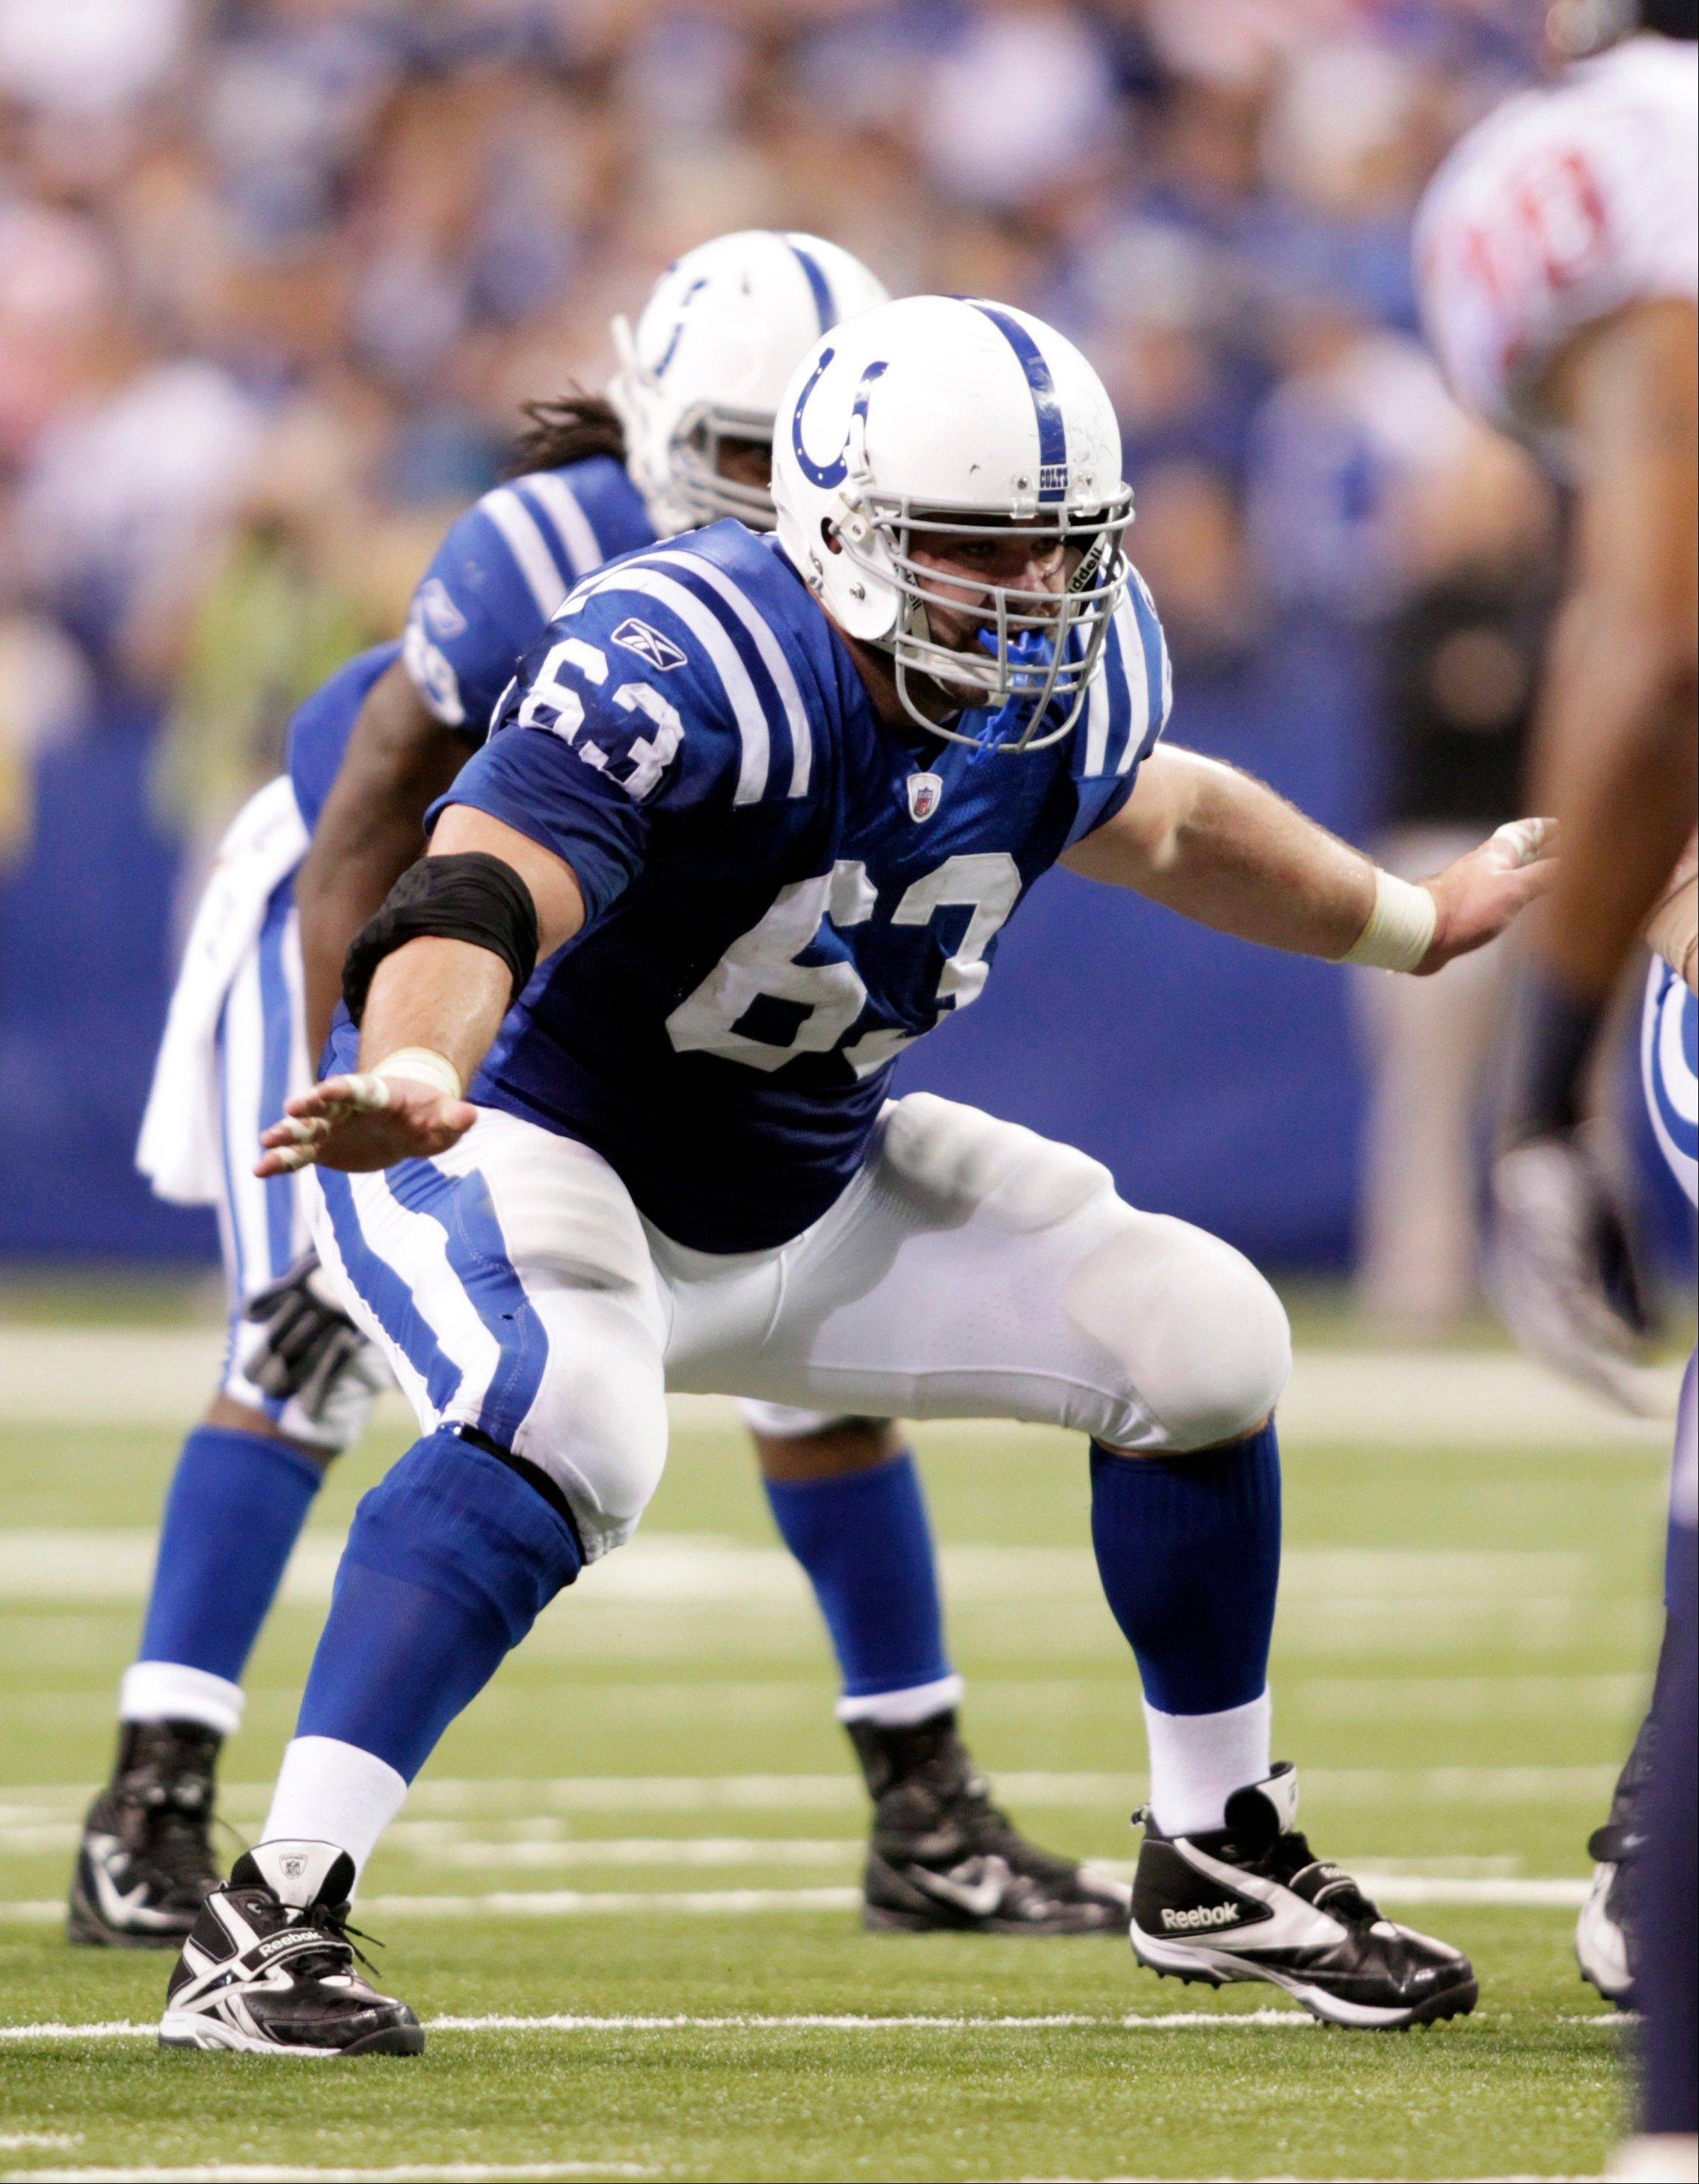 Ex-Colts' Jeff Saturday has agreed to a deal with the Green Bay Packers, sources with knowledge of the negotiations say.